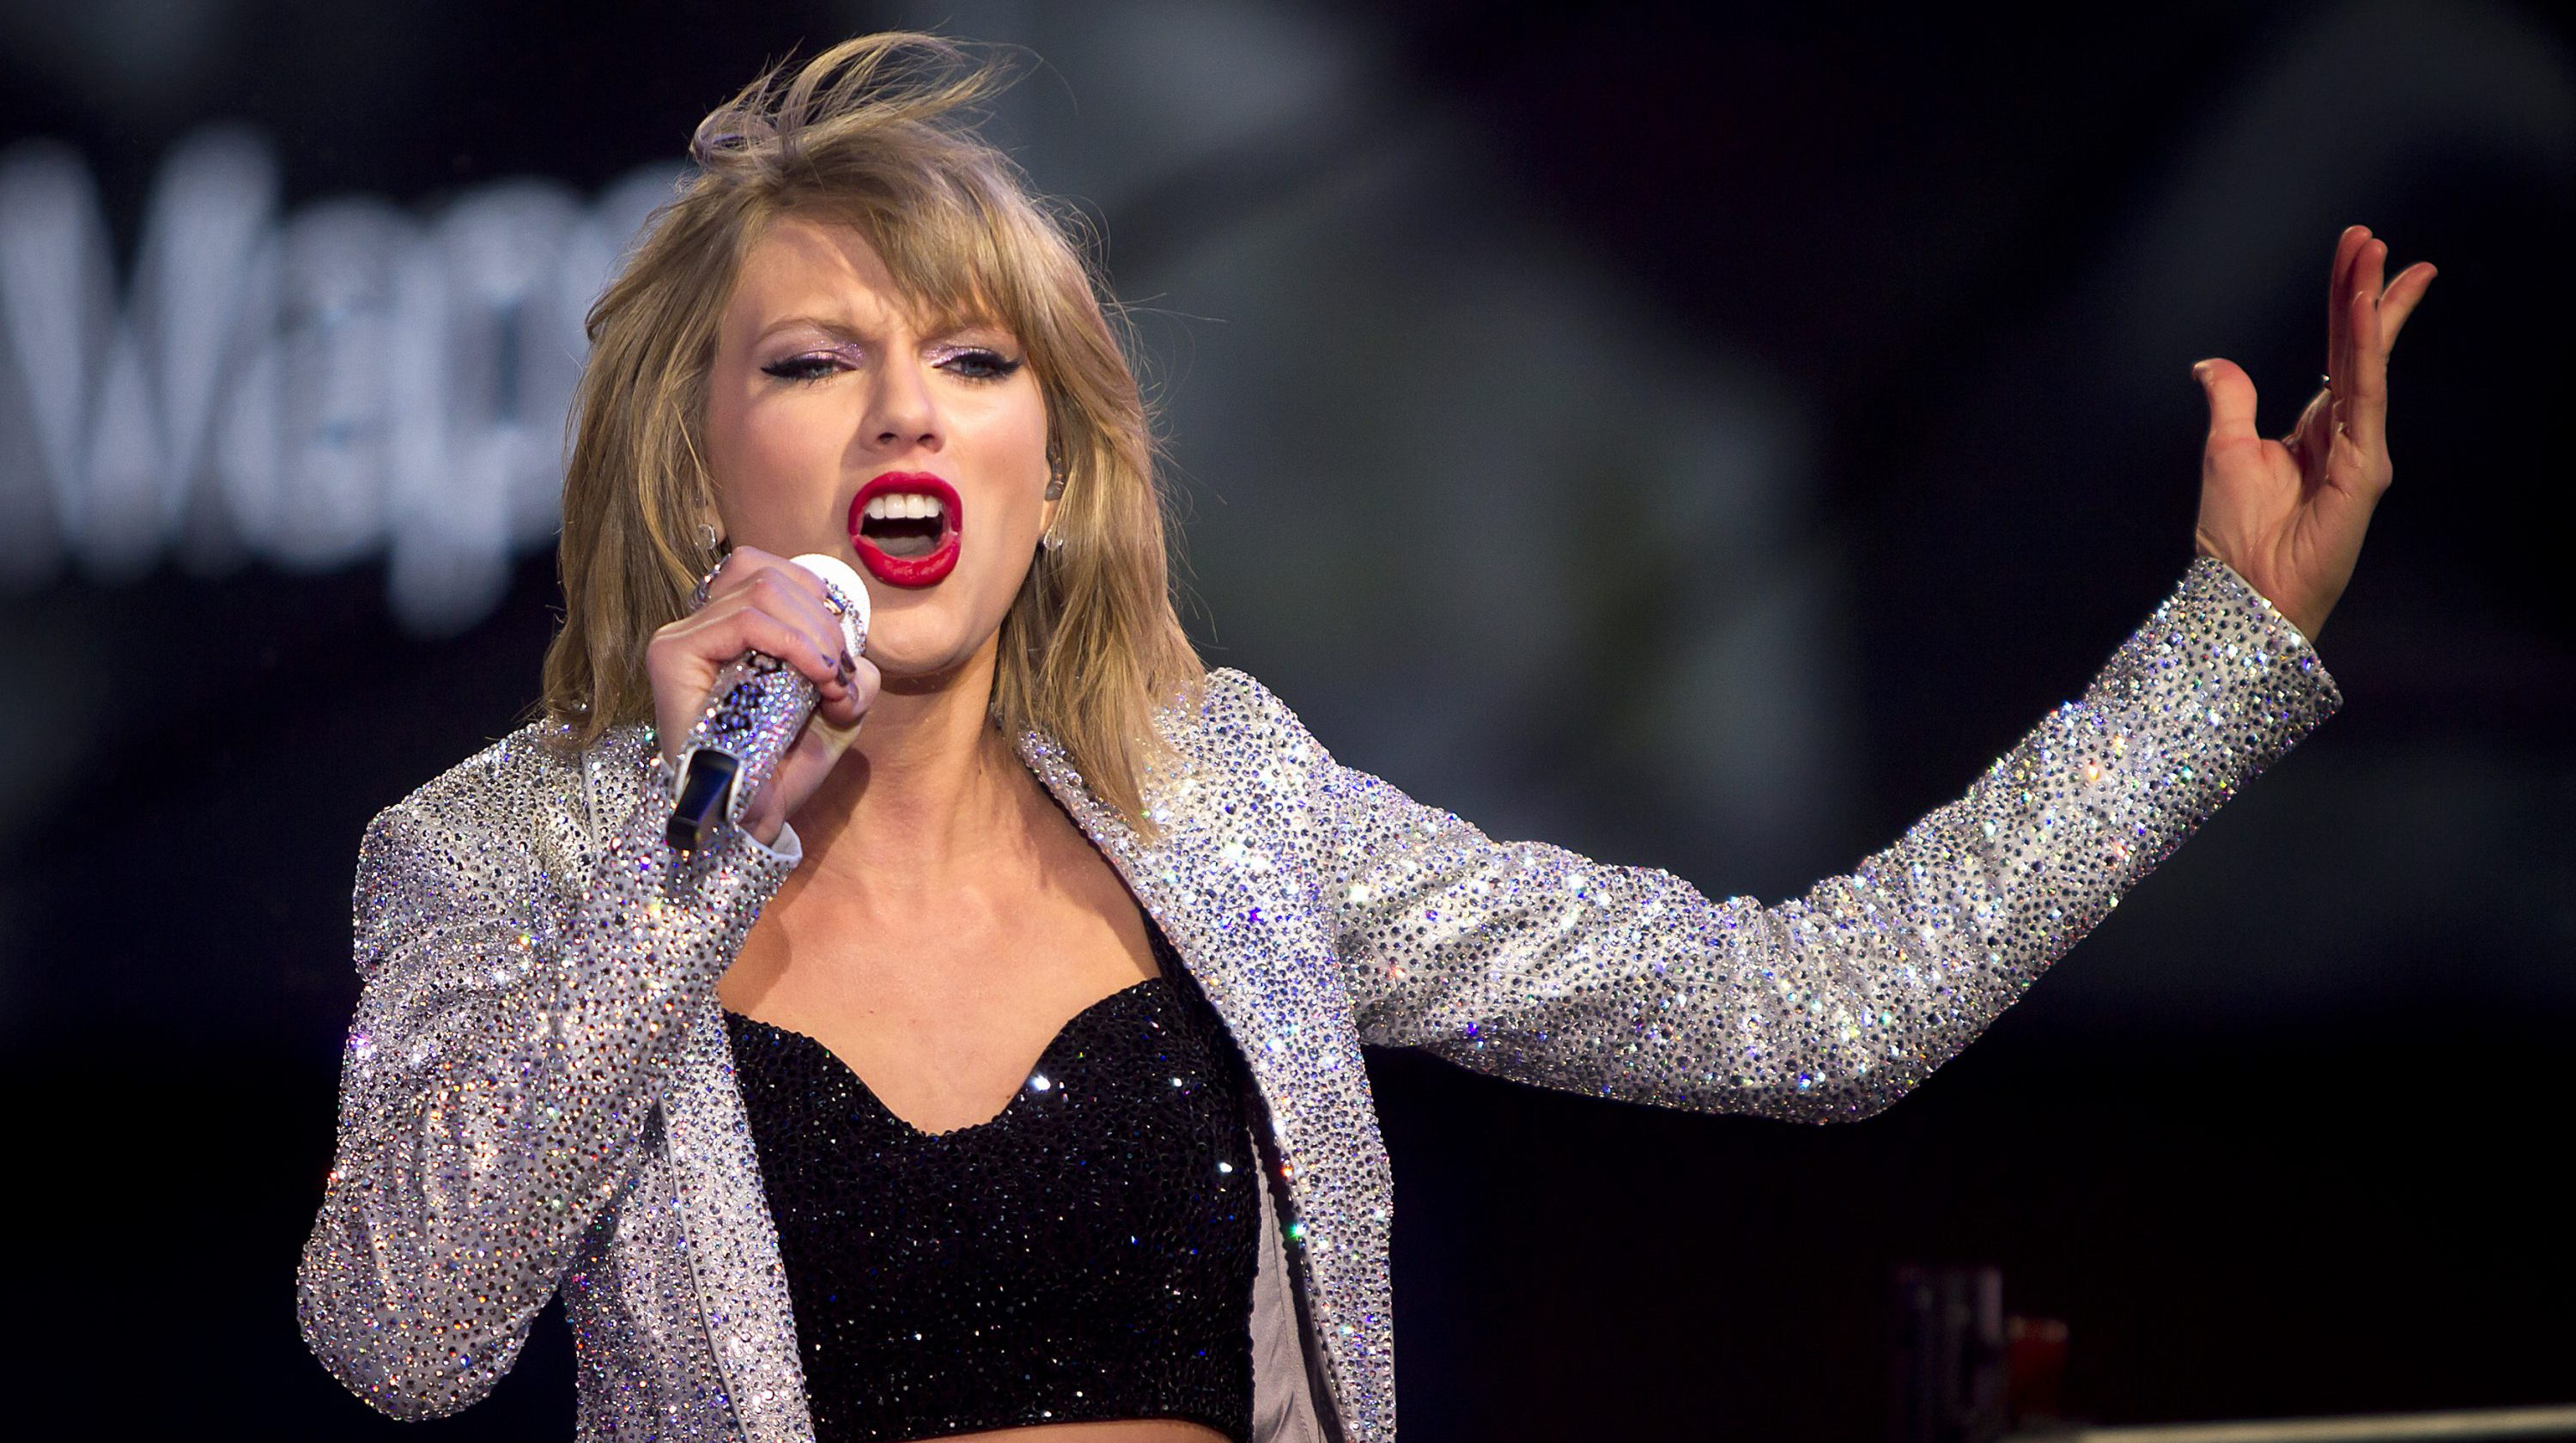 Taylor Swift performs in Times Square on New Year's Eve in New York, New York, U.S. December 31, 2014.